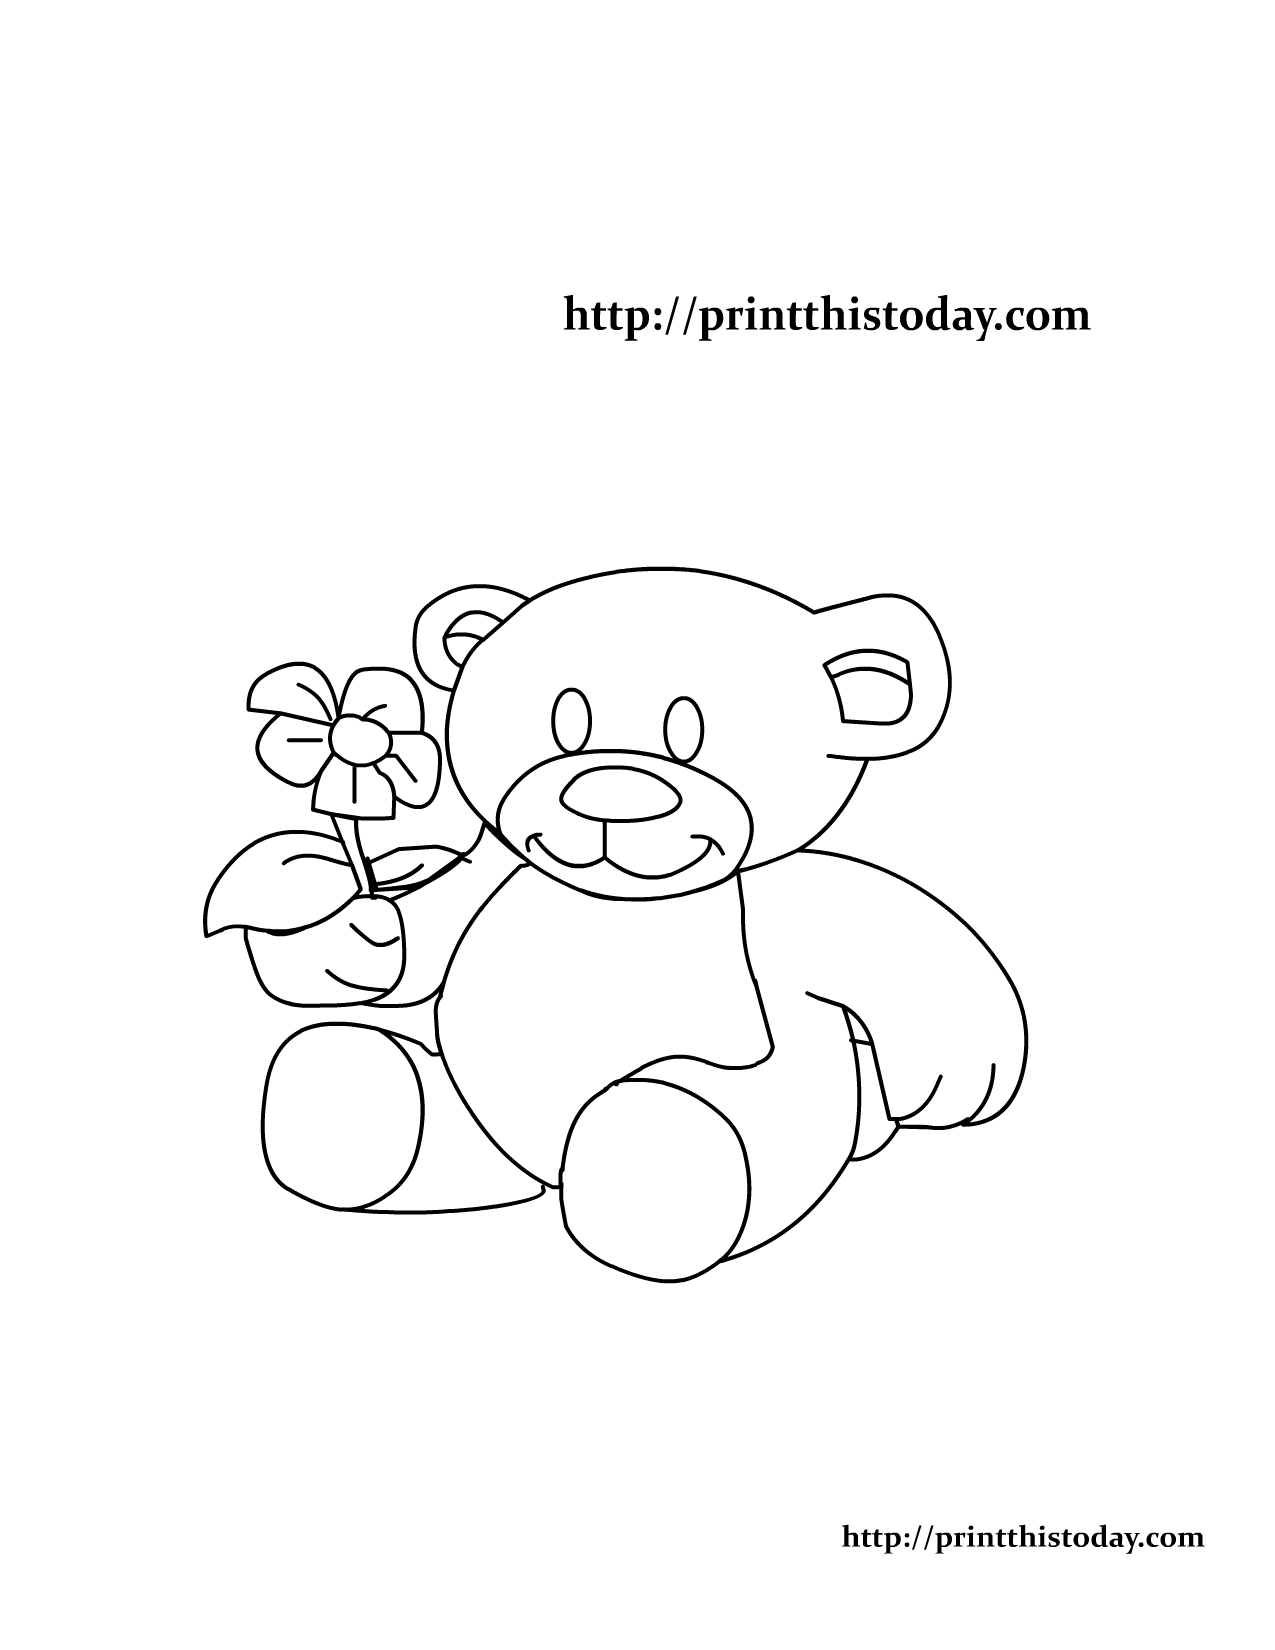 corduroy coloring page top corduroy coloring page with corduroy